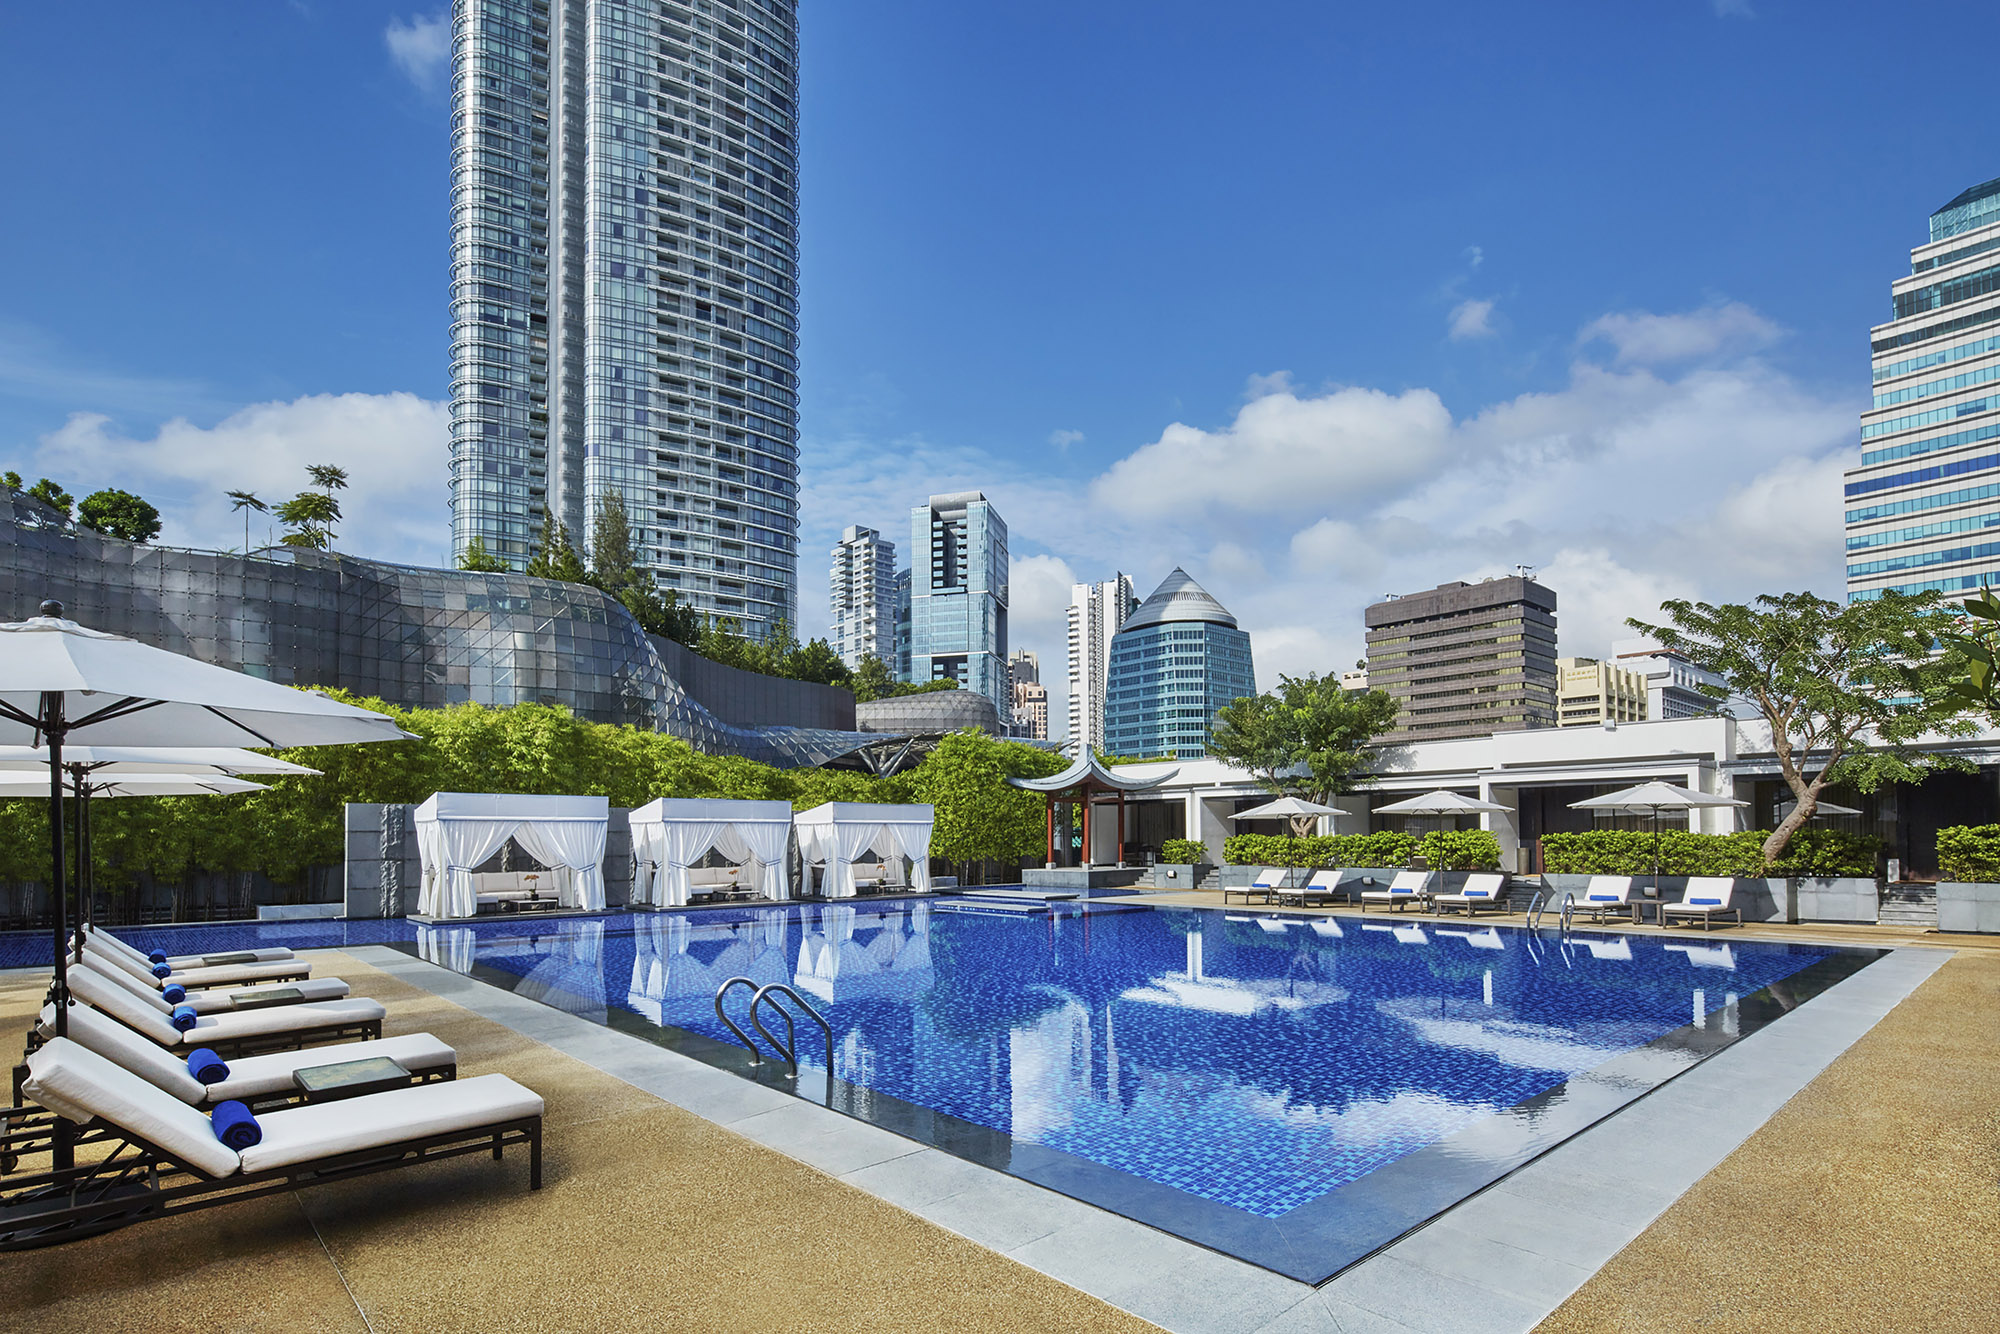 Marriott Tang Plaza Pool (Marriott)